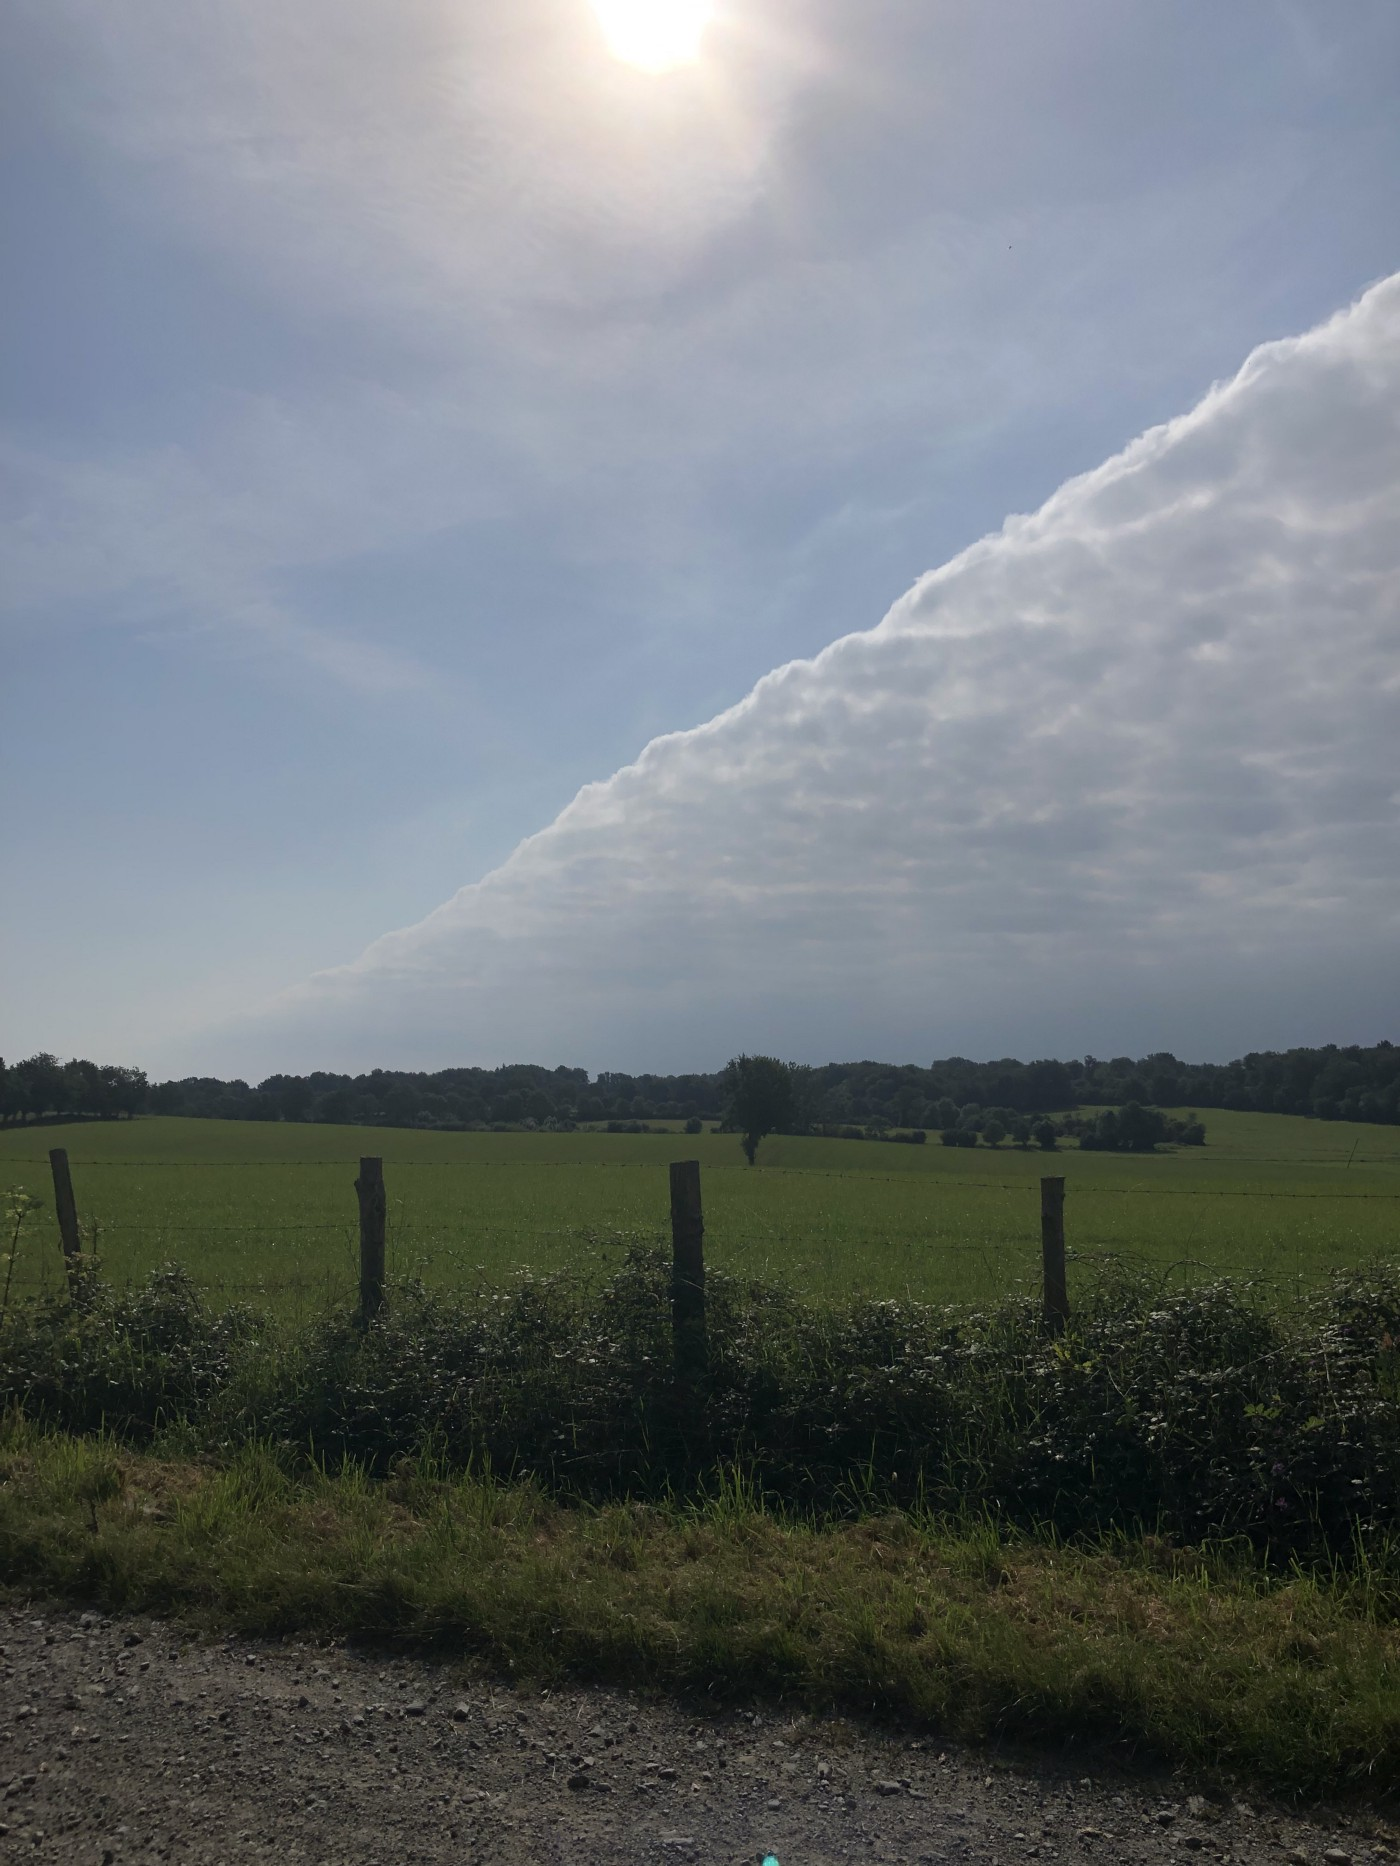 a stripe of clouds across the sky over a field, with a fence in the forwgrouind